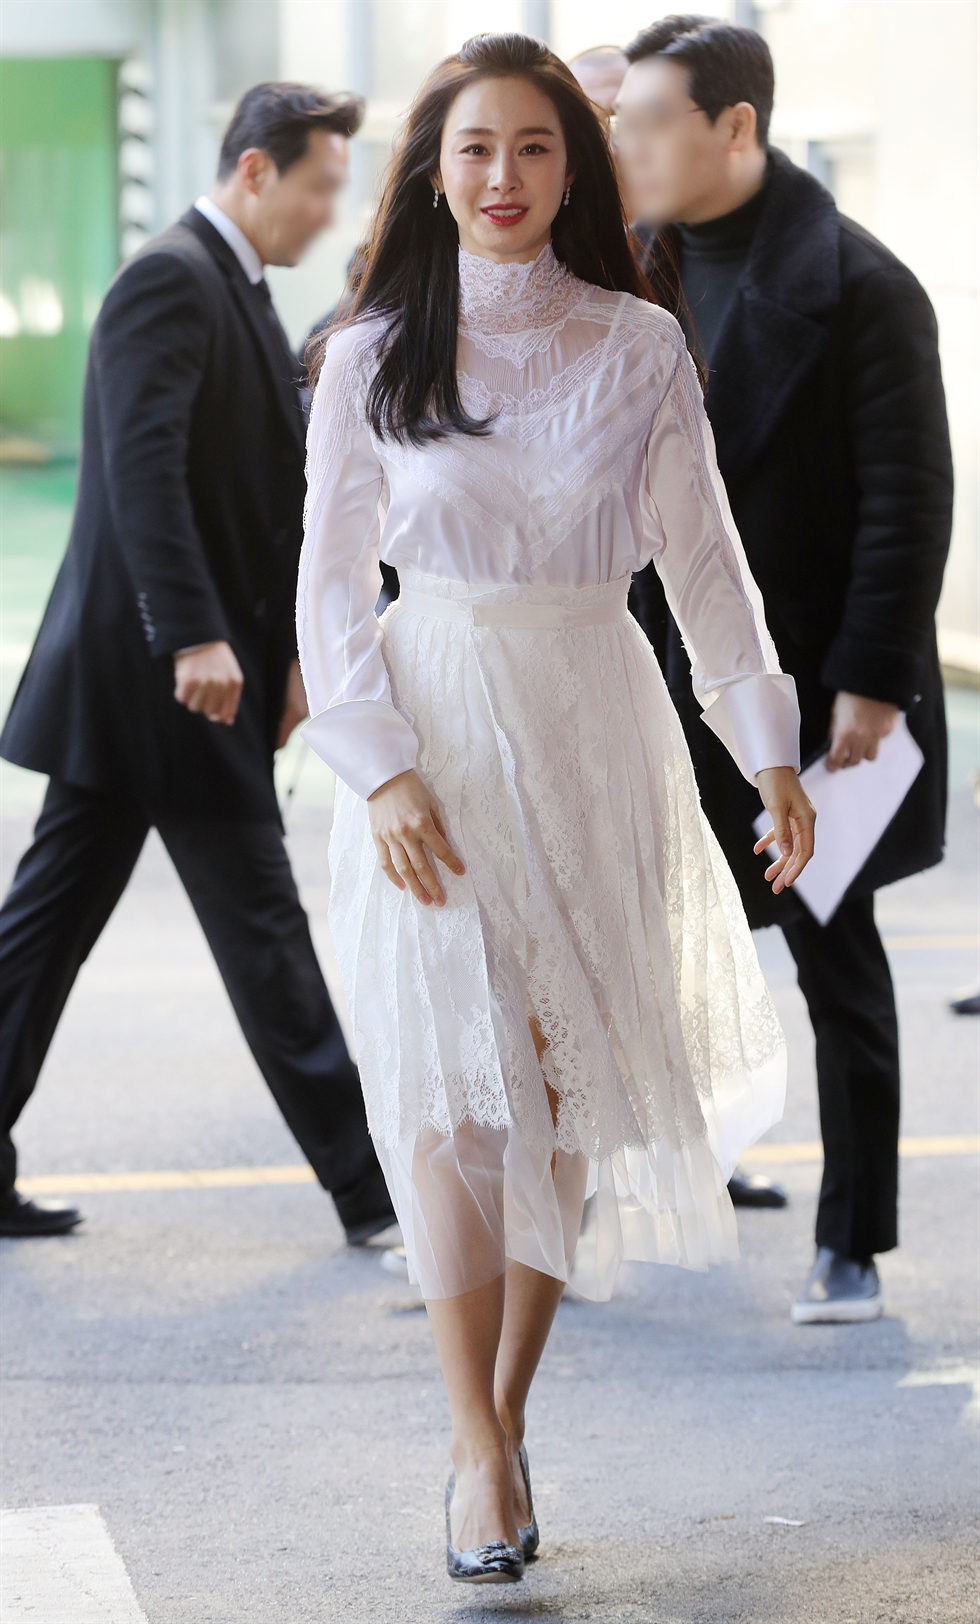 Actress Kim Tae-hee shows her radiant smile at a promotional event for a cosmetics brand in Seoul, Friday. It was her first appearance before the media after giving birth to her second child in September. She married K-pop singer Rain in January 2017 and had her first baby in October of that year. Yonhap